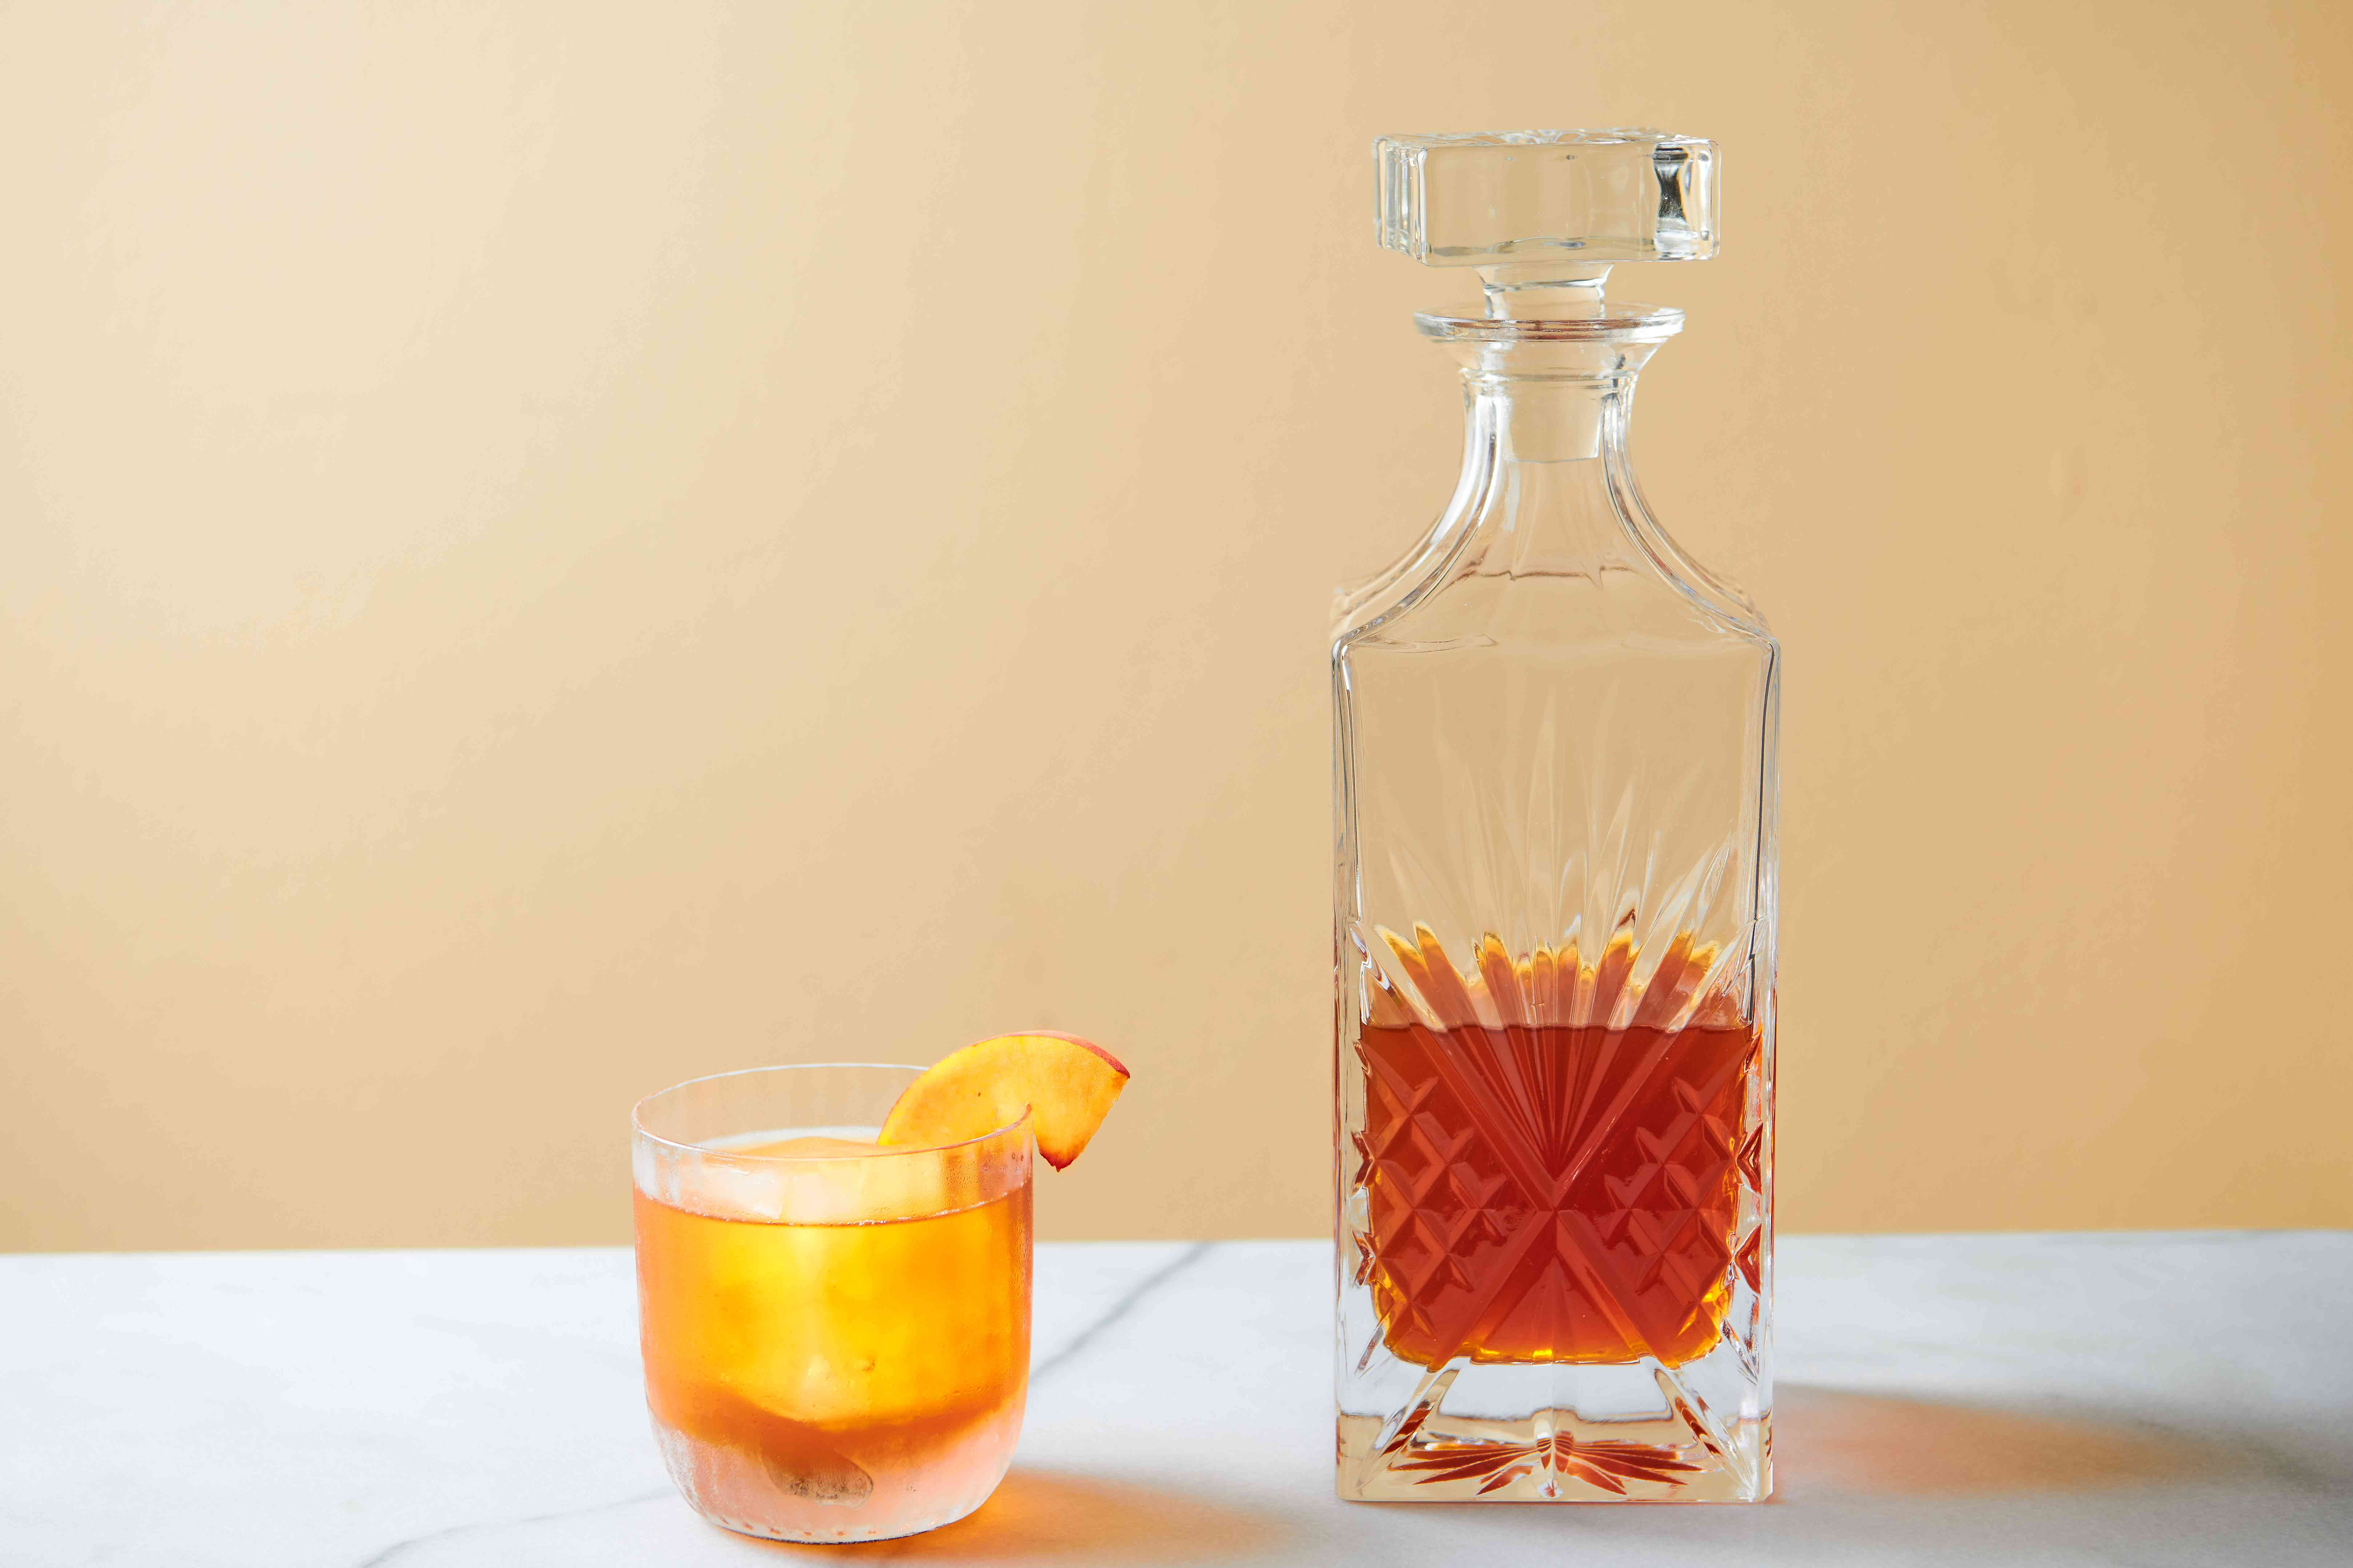 A glass of peach liqueur with ice and a decanter filled with peach liqueur